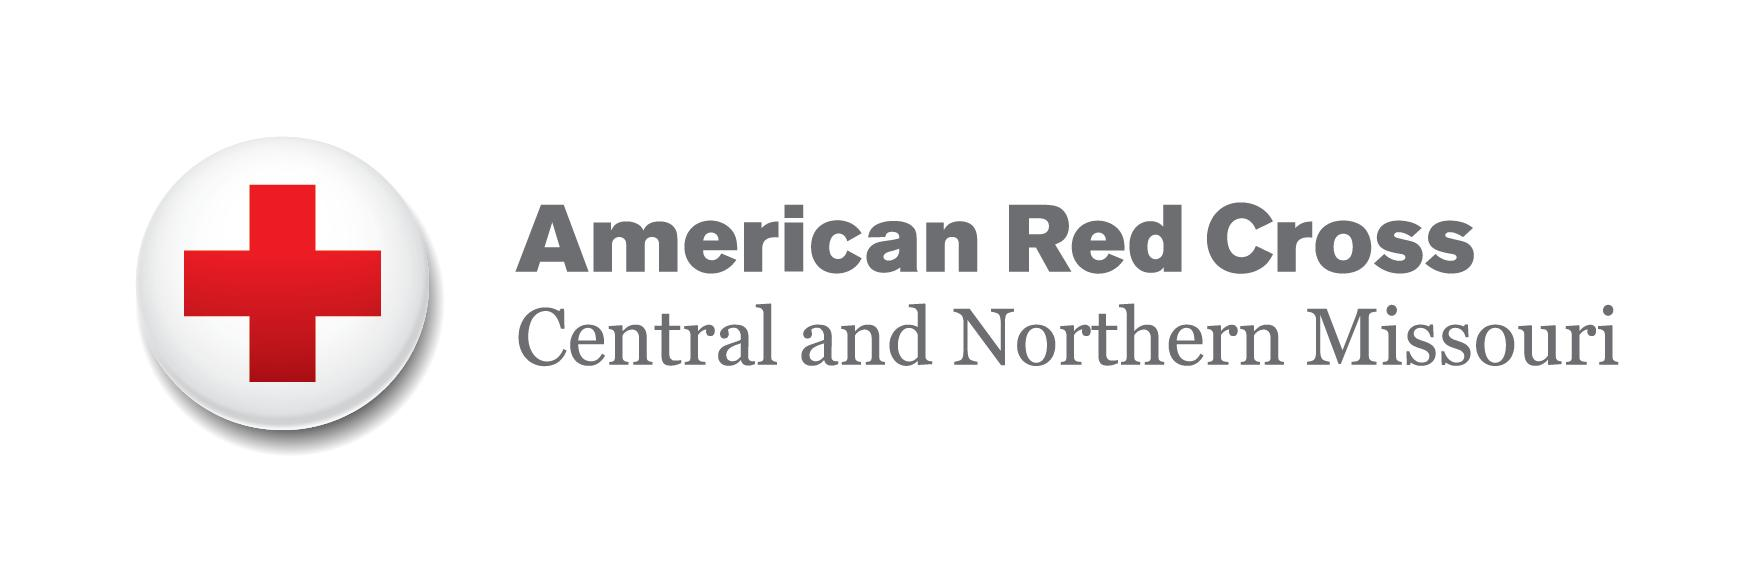 Central and Northern MO logo